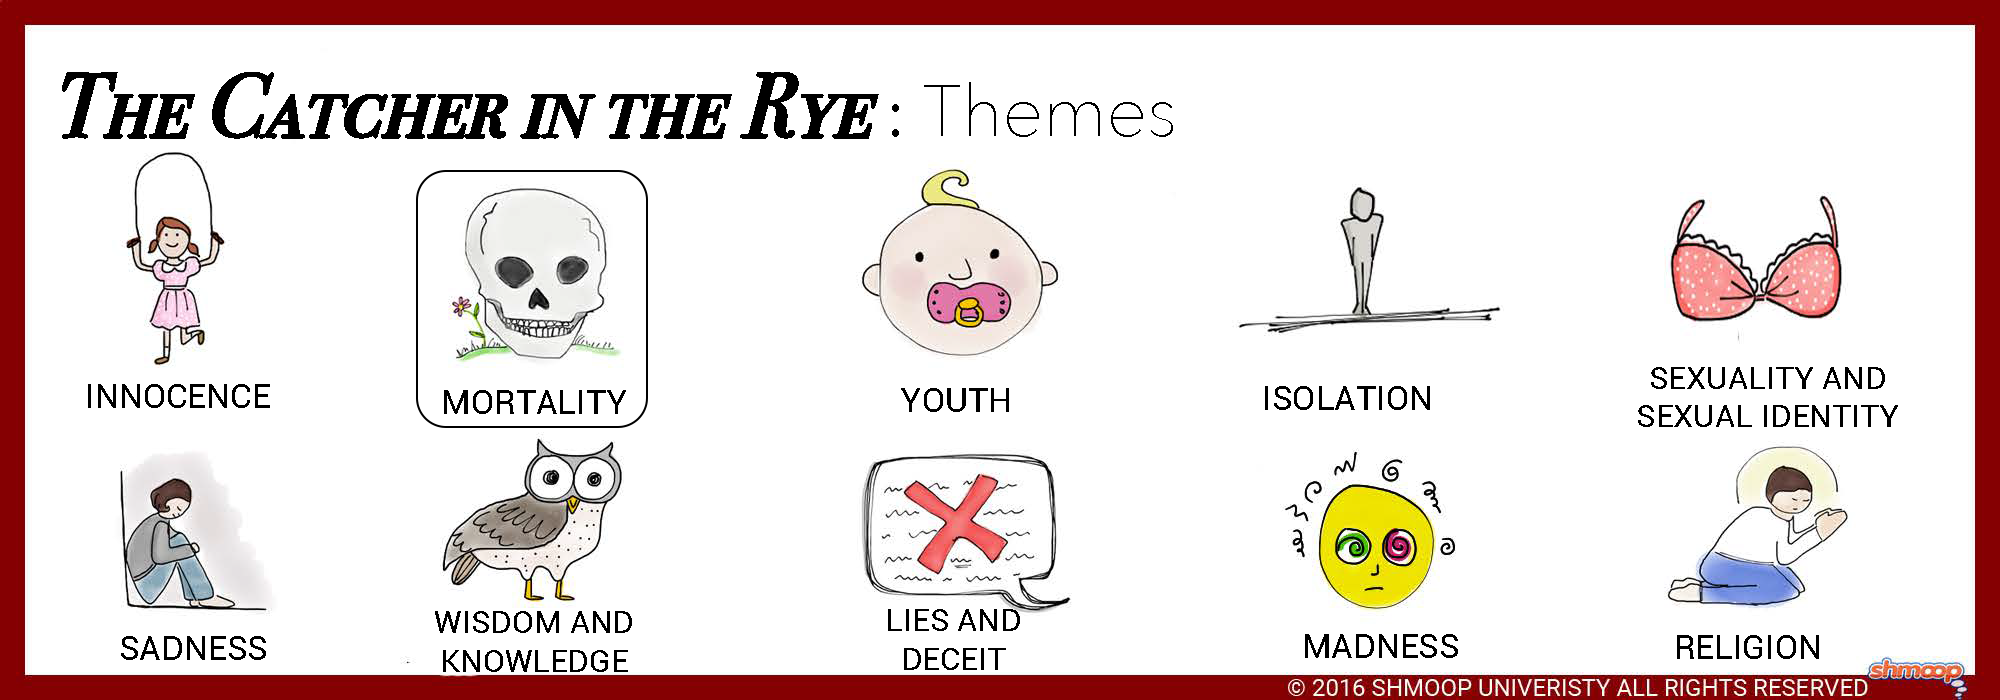 the themes of the innocence in the literature to kill a mockingbird and the catcher in the rye Catcher in the rye, the catcher in the rye, catcher, catcher in the, catcher salinger this complete 128-page literature guide for the catcher in the rye contains student coursework, activities, quizzes, tests, and more aligned with.